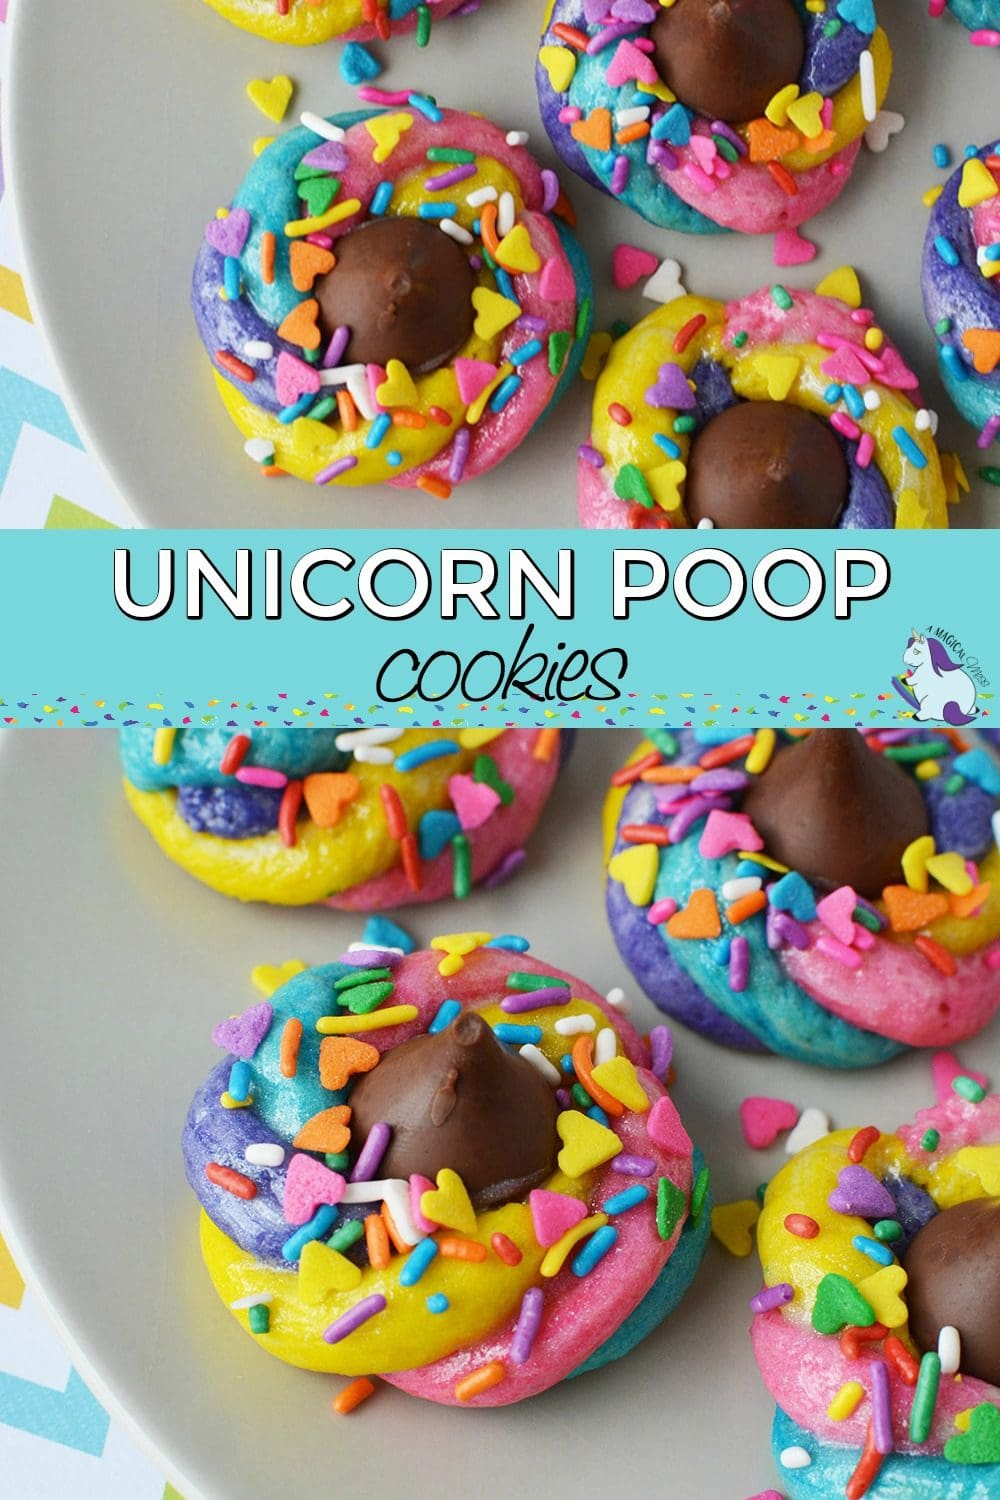 Unicorn poop cookies on a plate collage